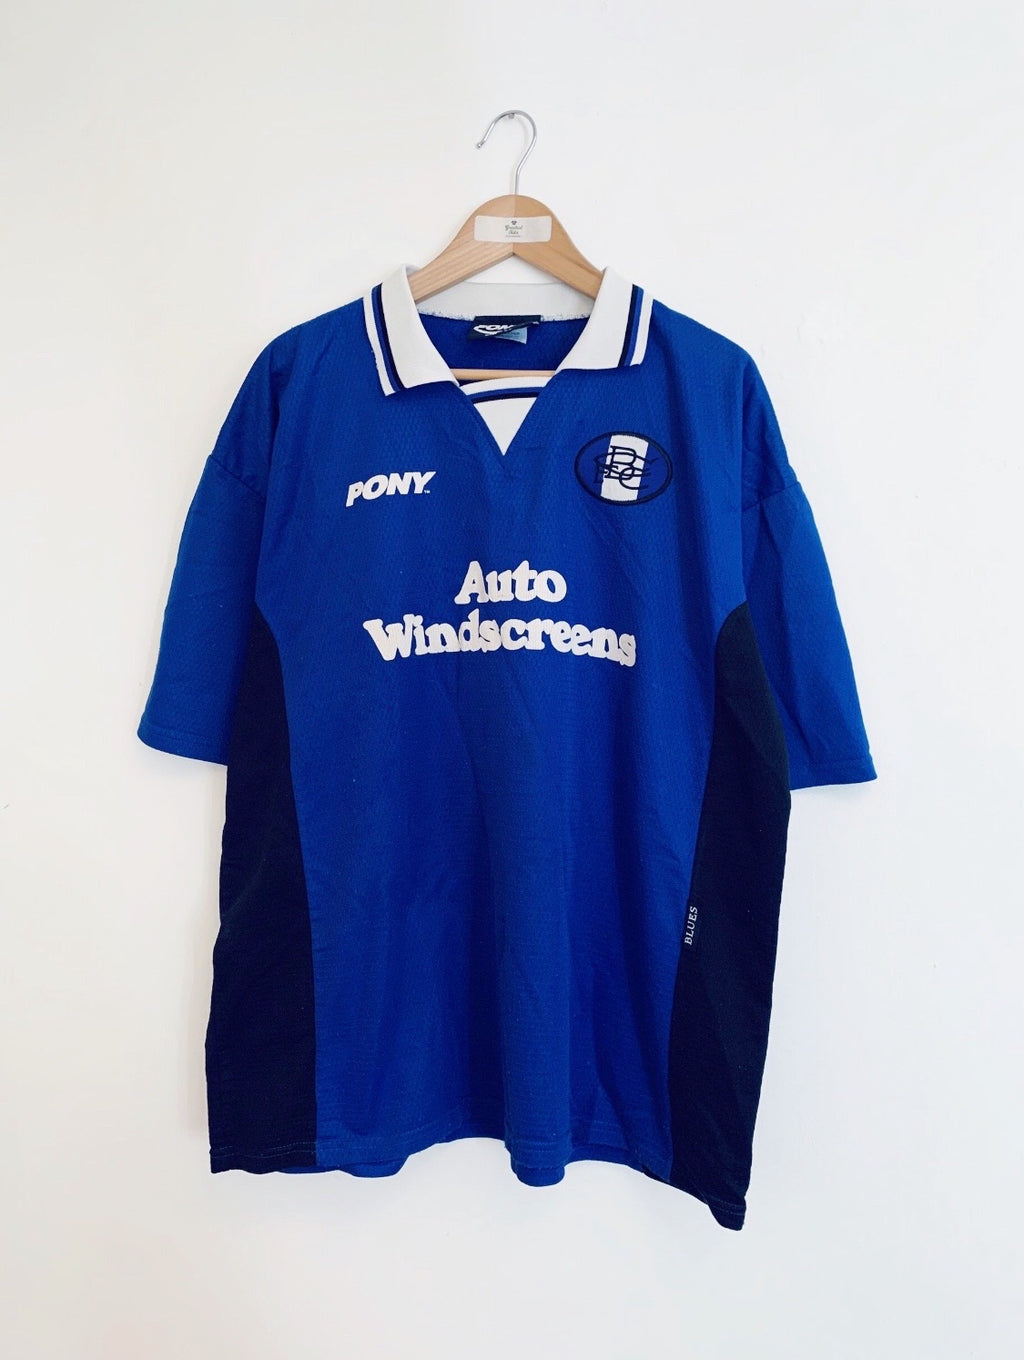 1996/97 Birmingham Home Shirt (XL) 6.5/10